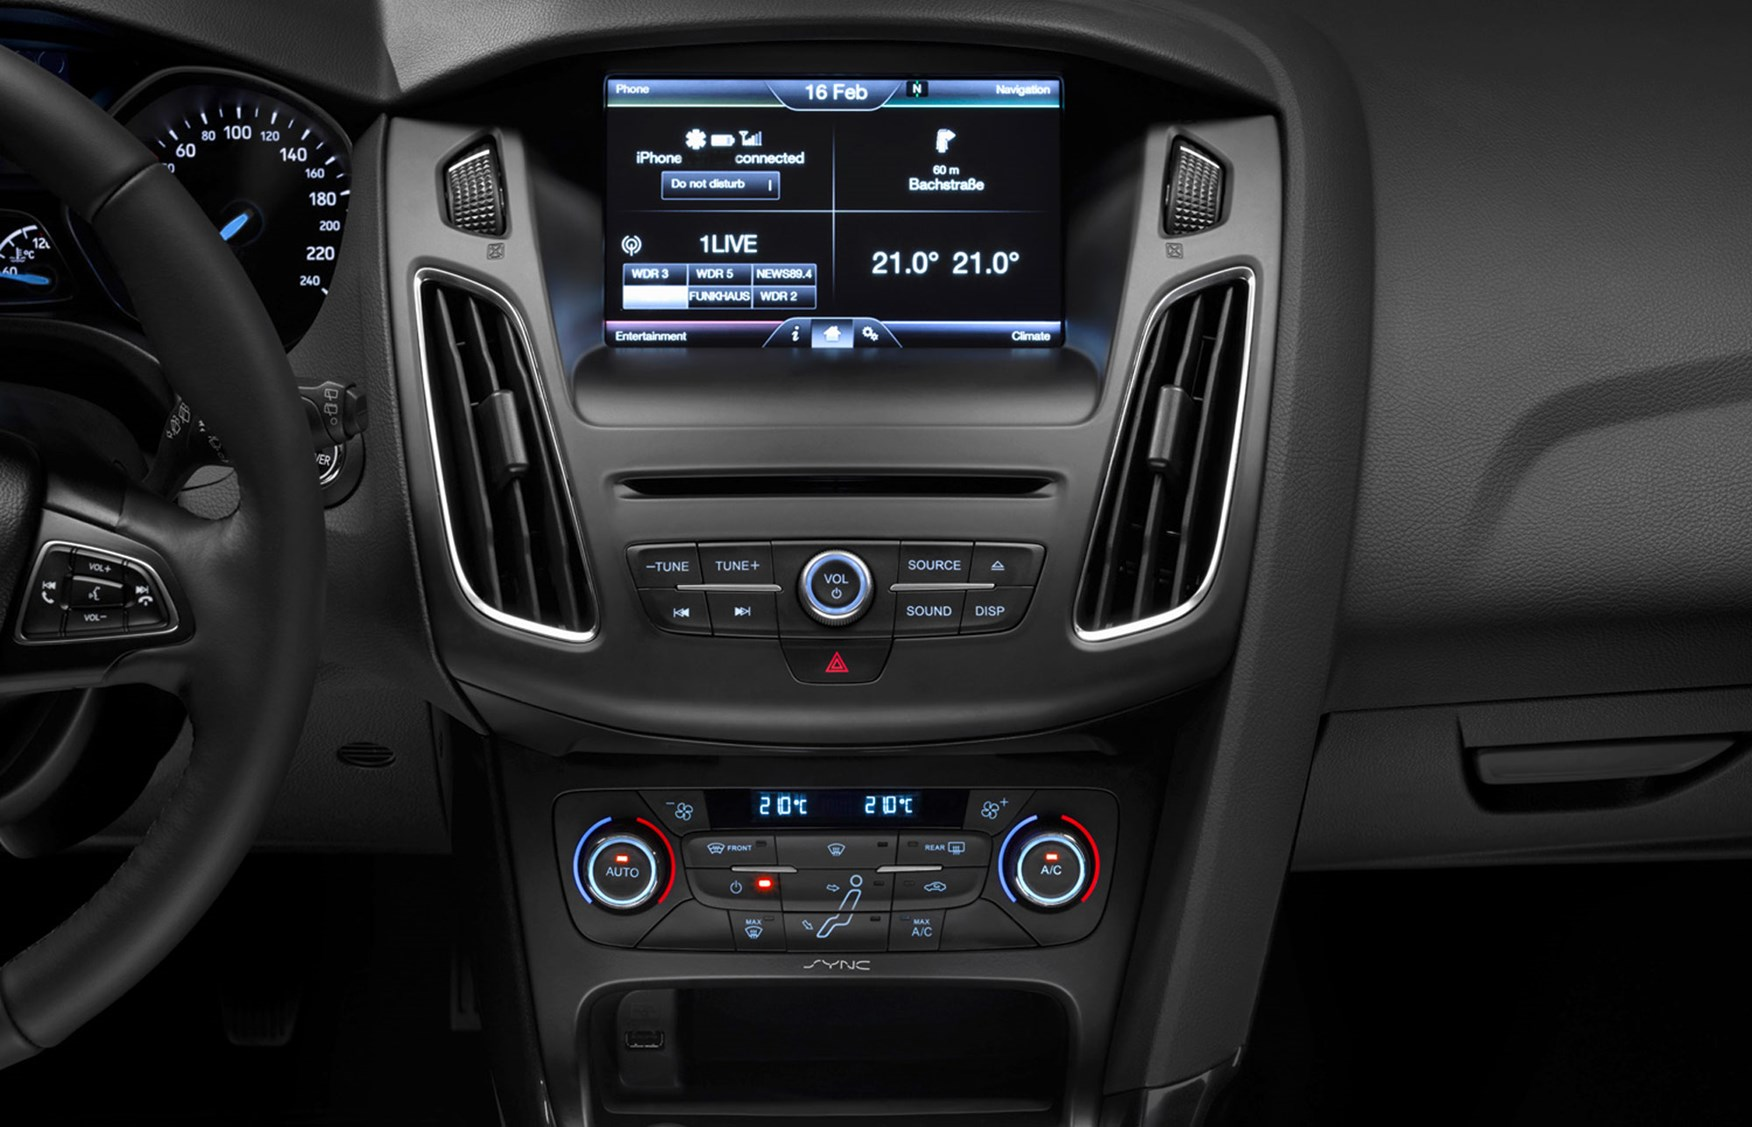 amusing-design-of-the-black-dash-ideas-added-with-silver-accents-as-the-ford-focus-facelift-2015-interior-ideas